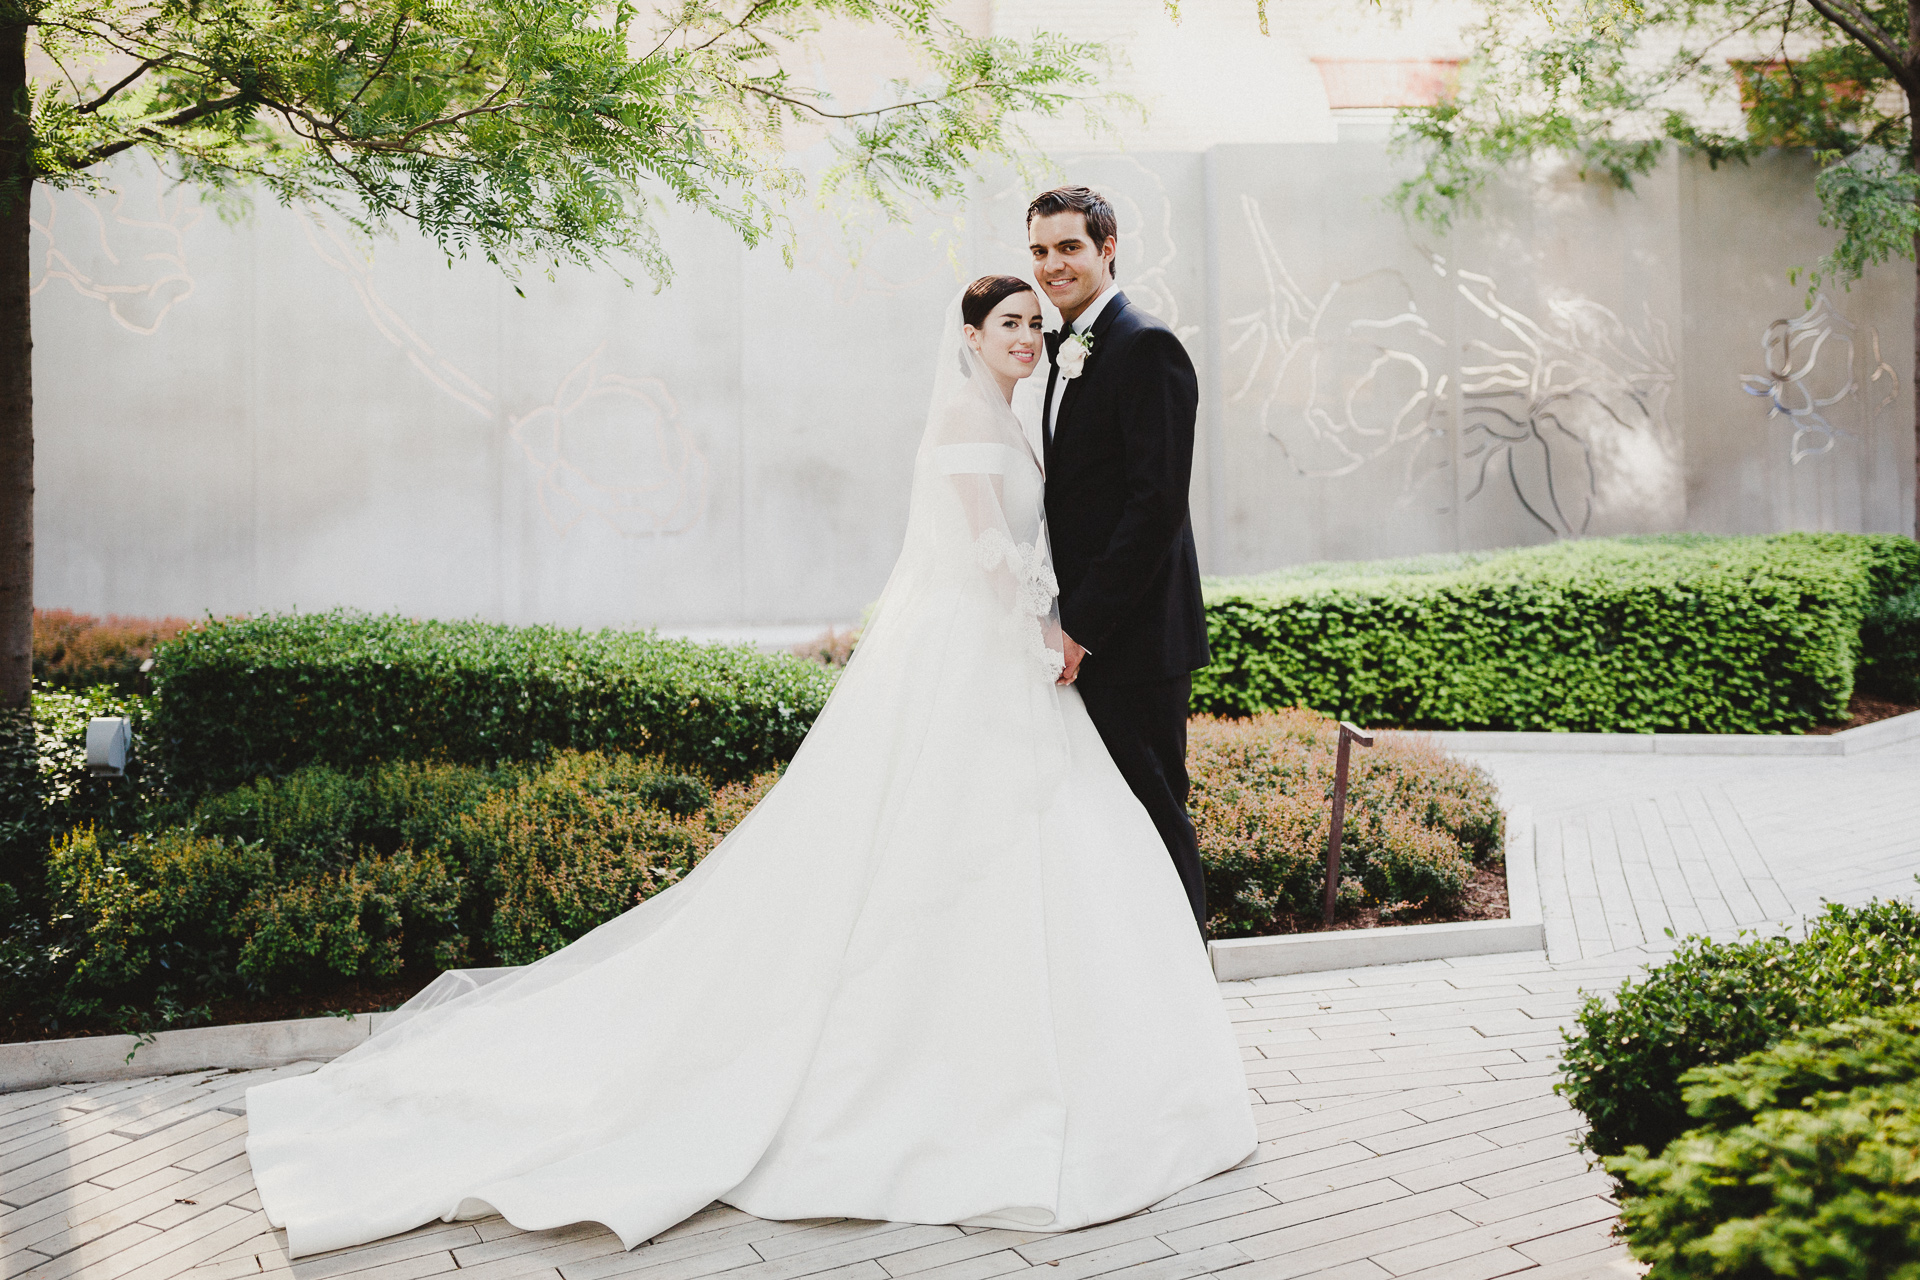 Wedding Photo by Top Toronto Wedding Photographer Avangard Photography